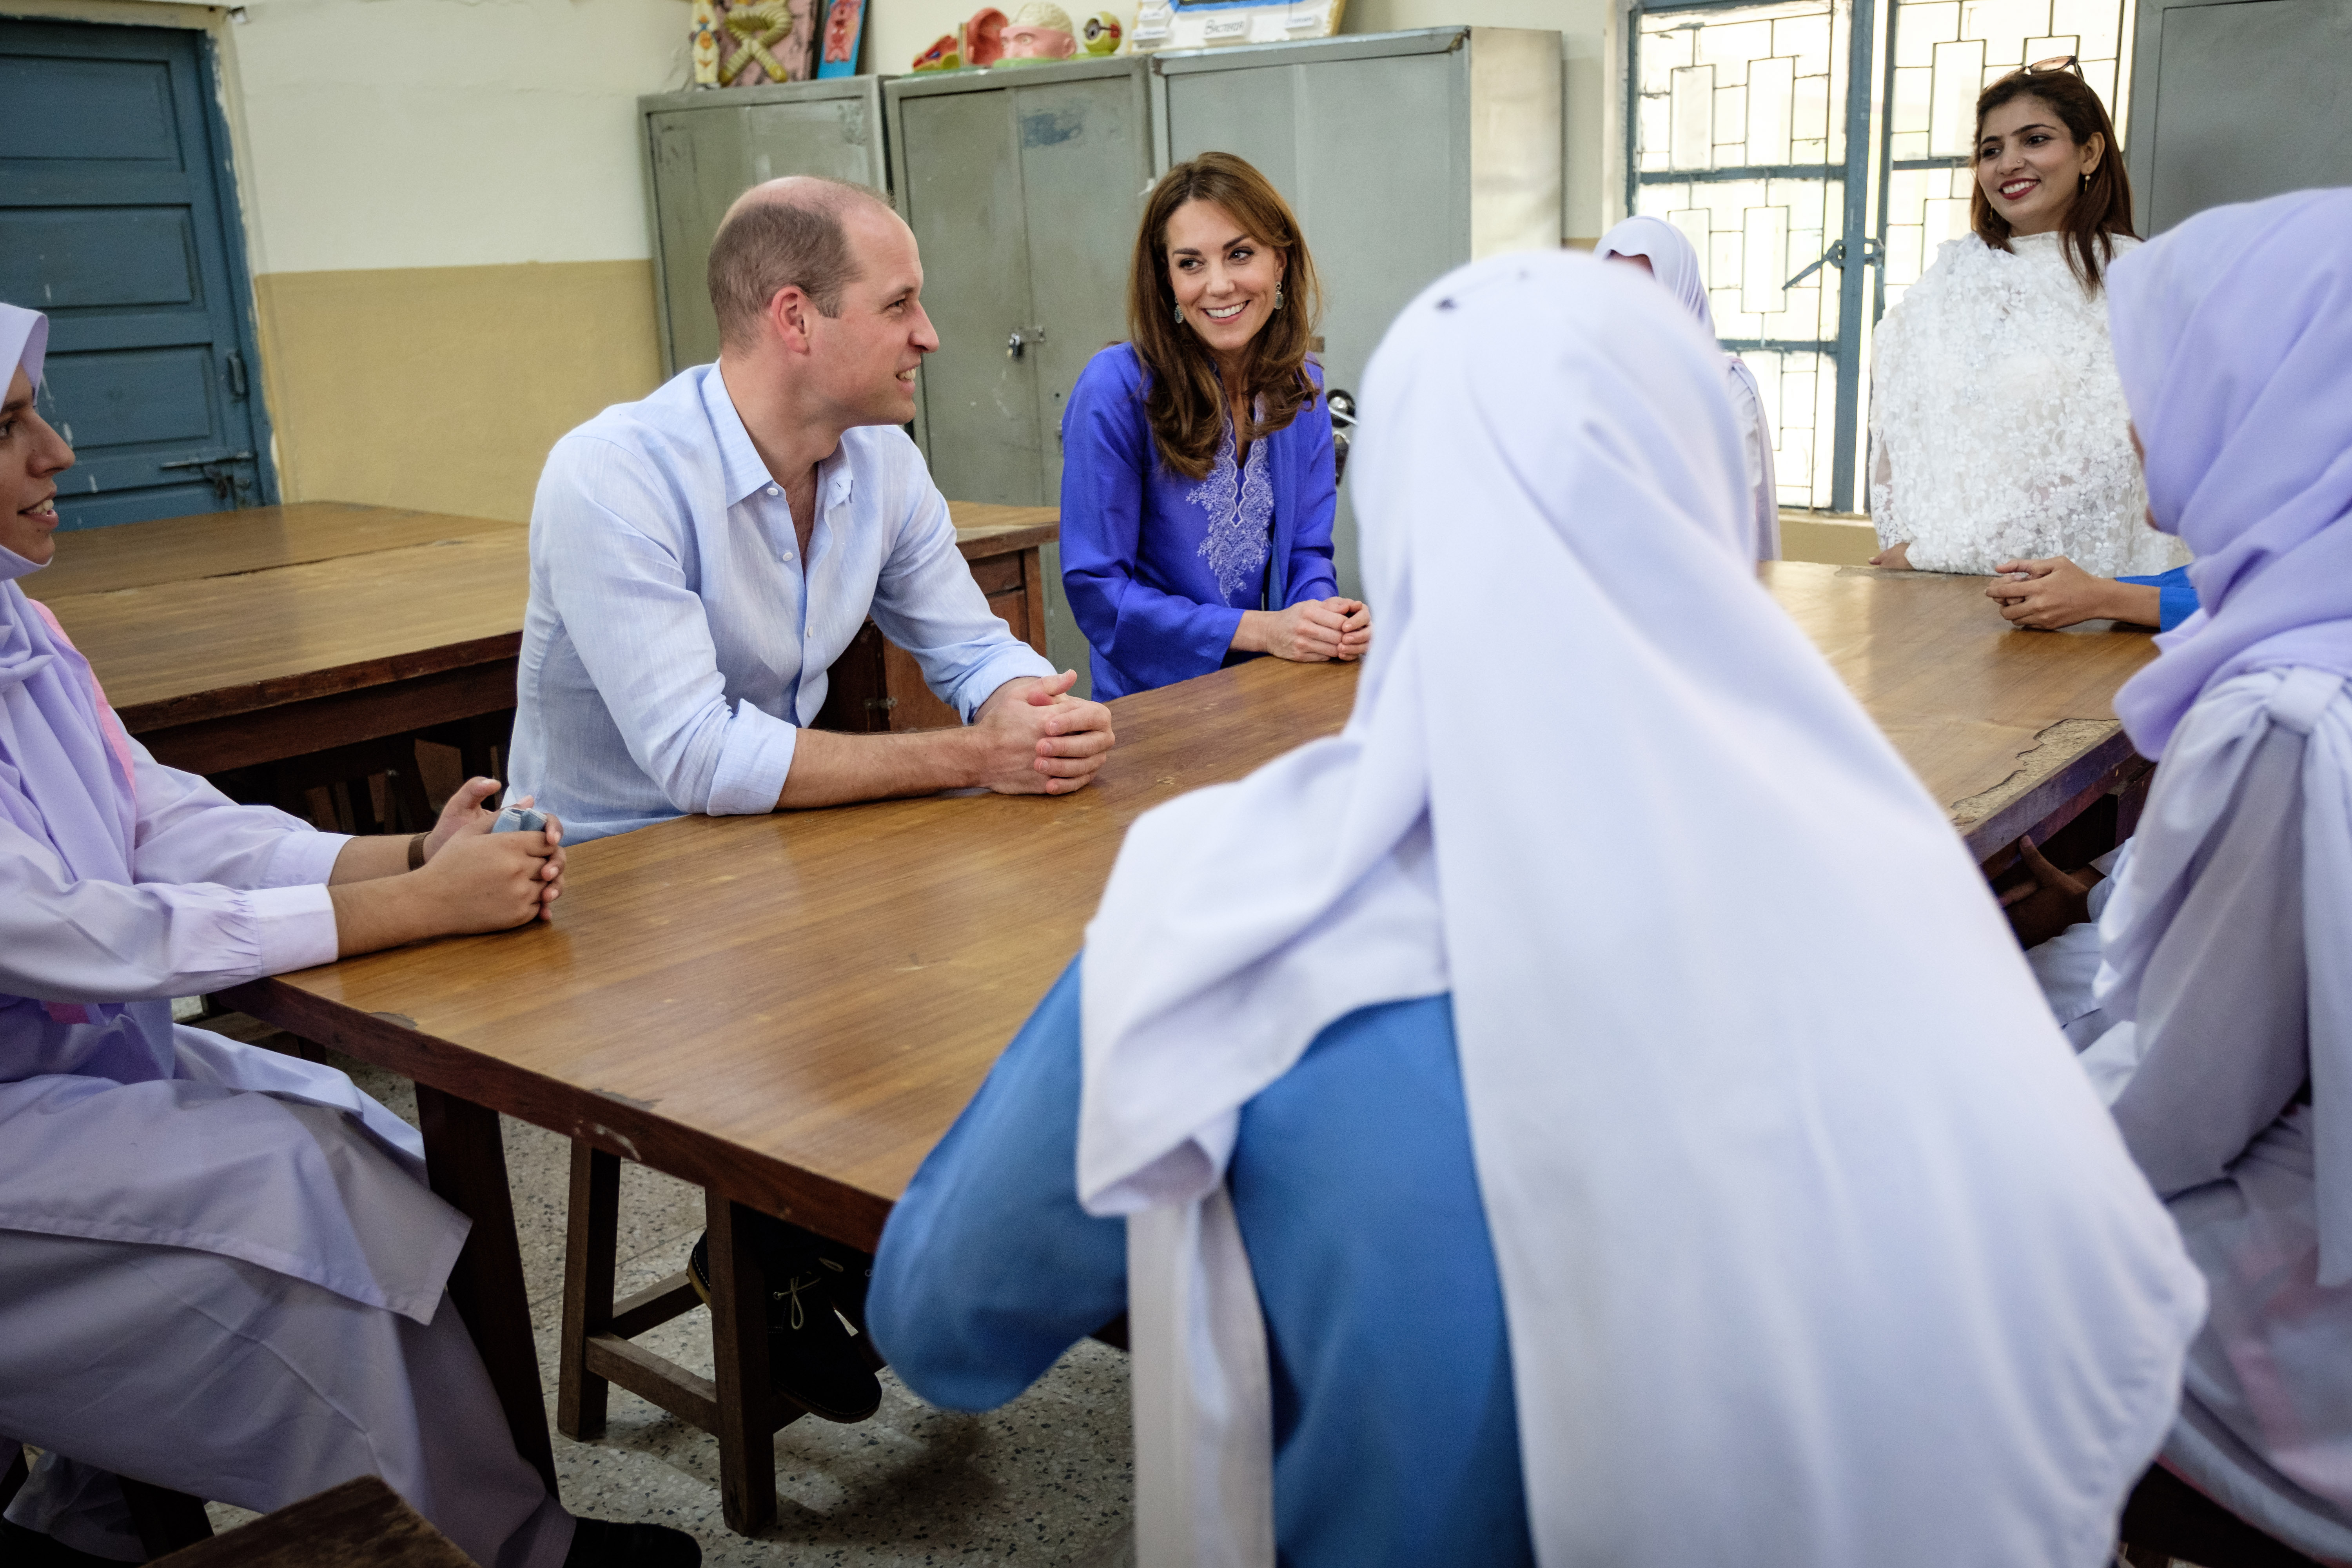 The Duke and Duchess of Cambridge visit a school in Pakistan